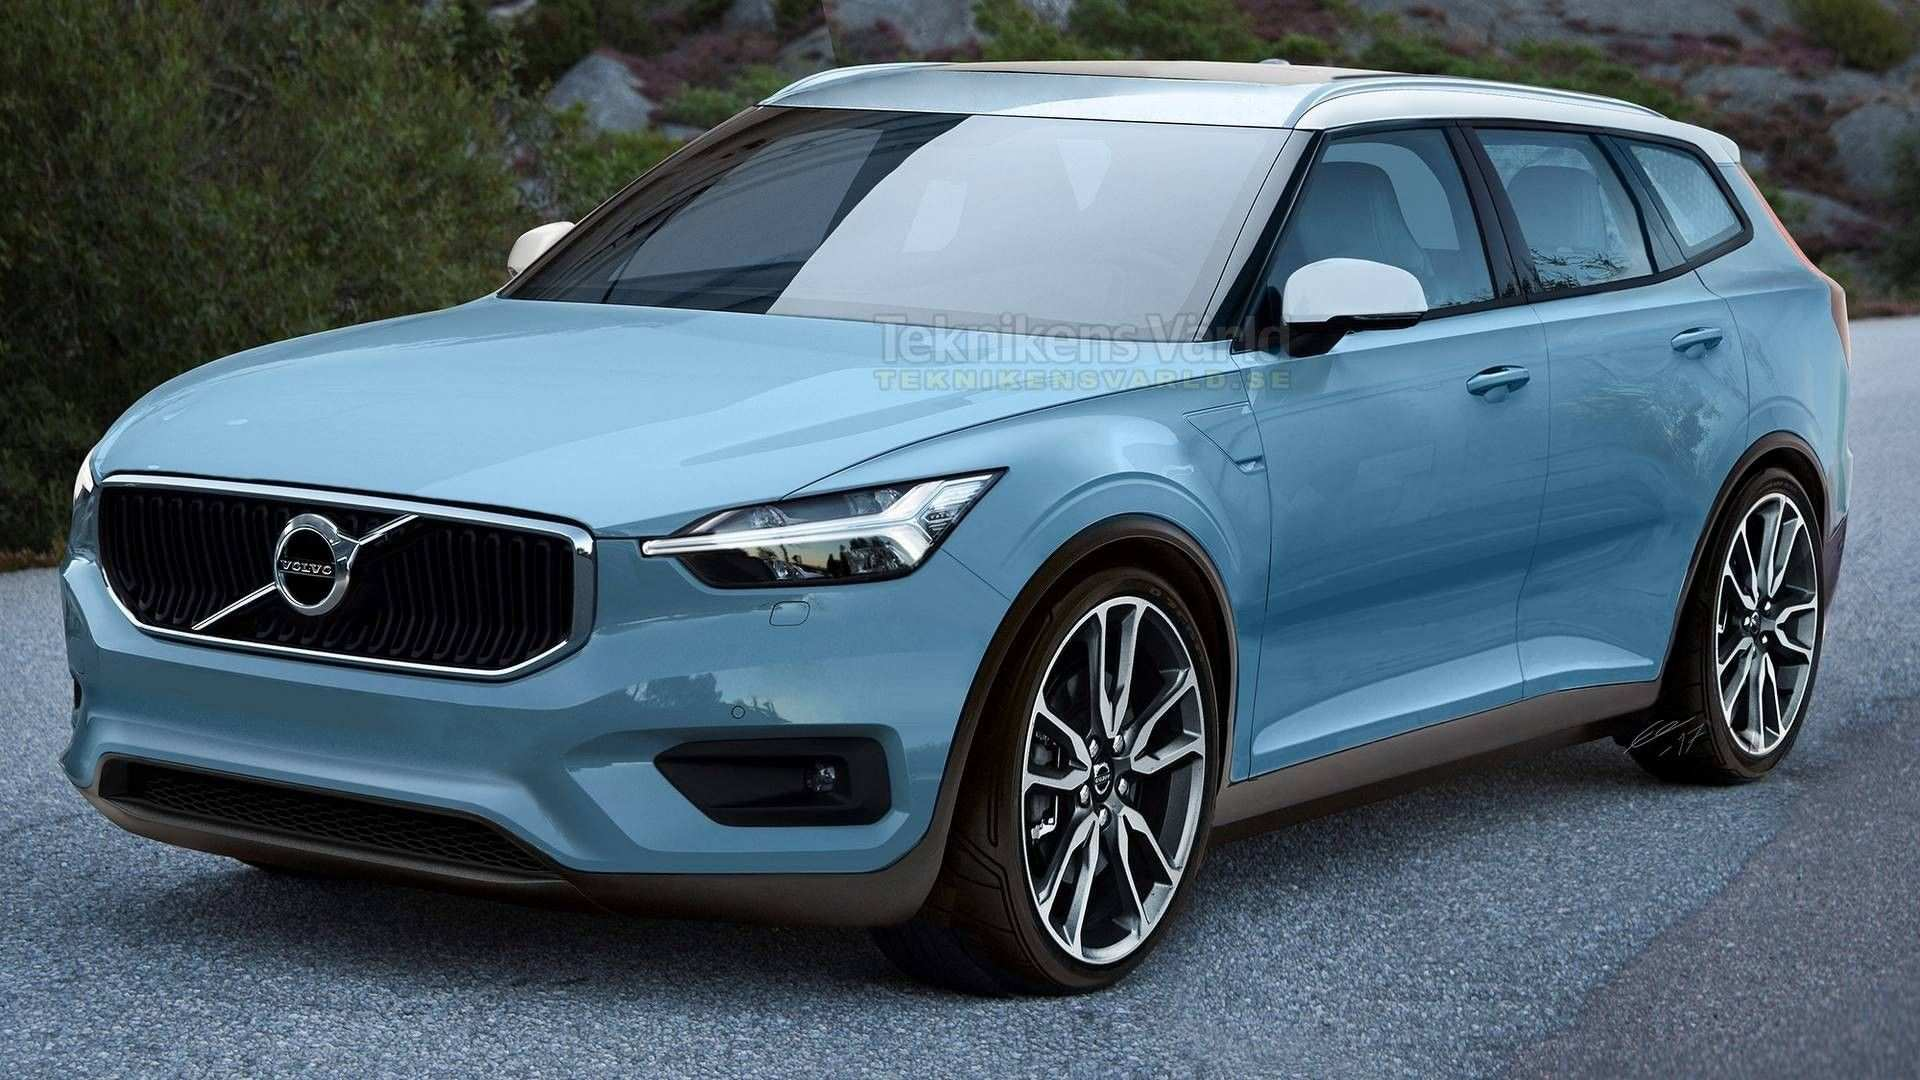 75 All New Volvo New Cars 2020 Reviews